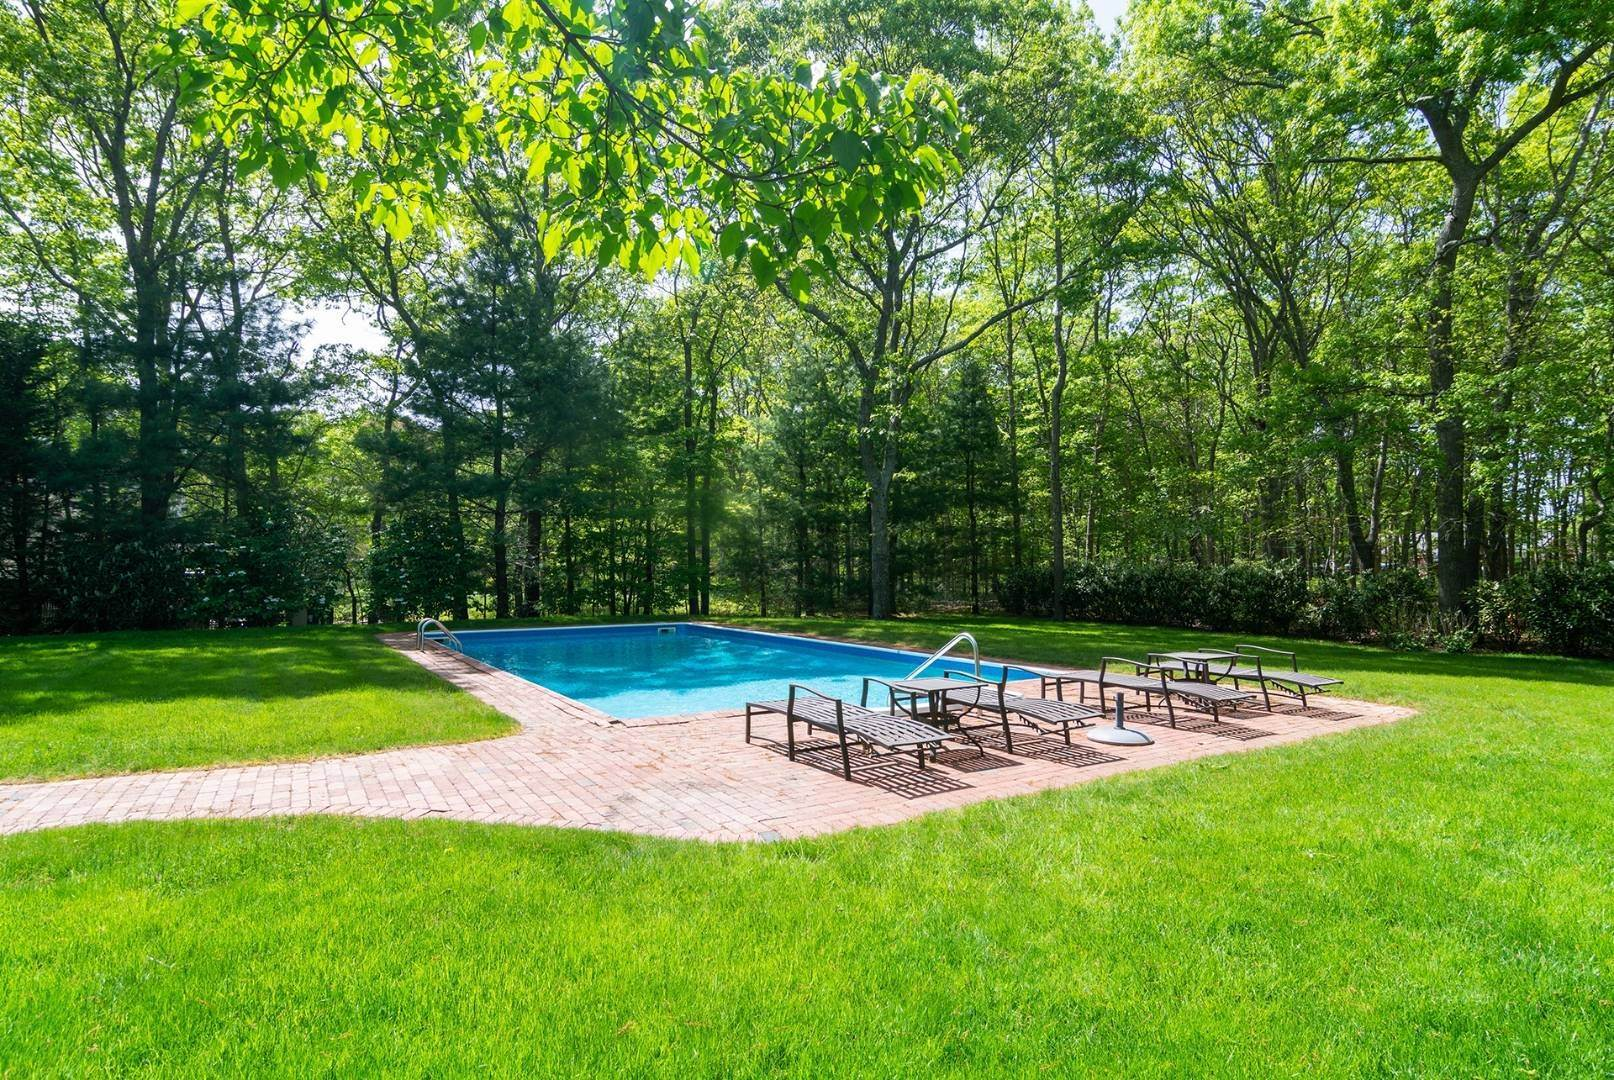 4. Single Family Home at Sagaponack Wonderful Rental 27 East Woods Path, Sagaponack, NY 11963